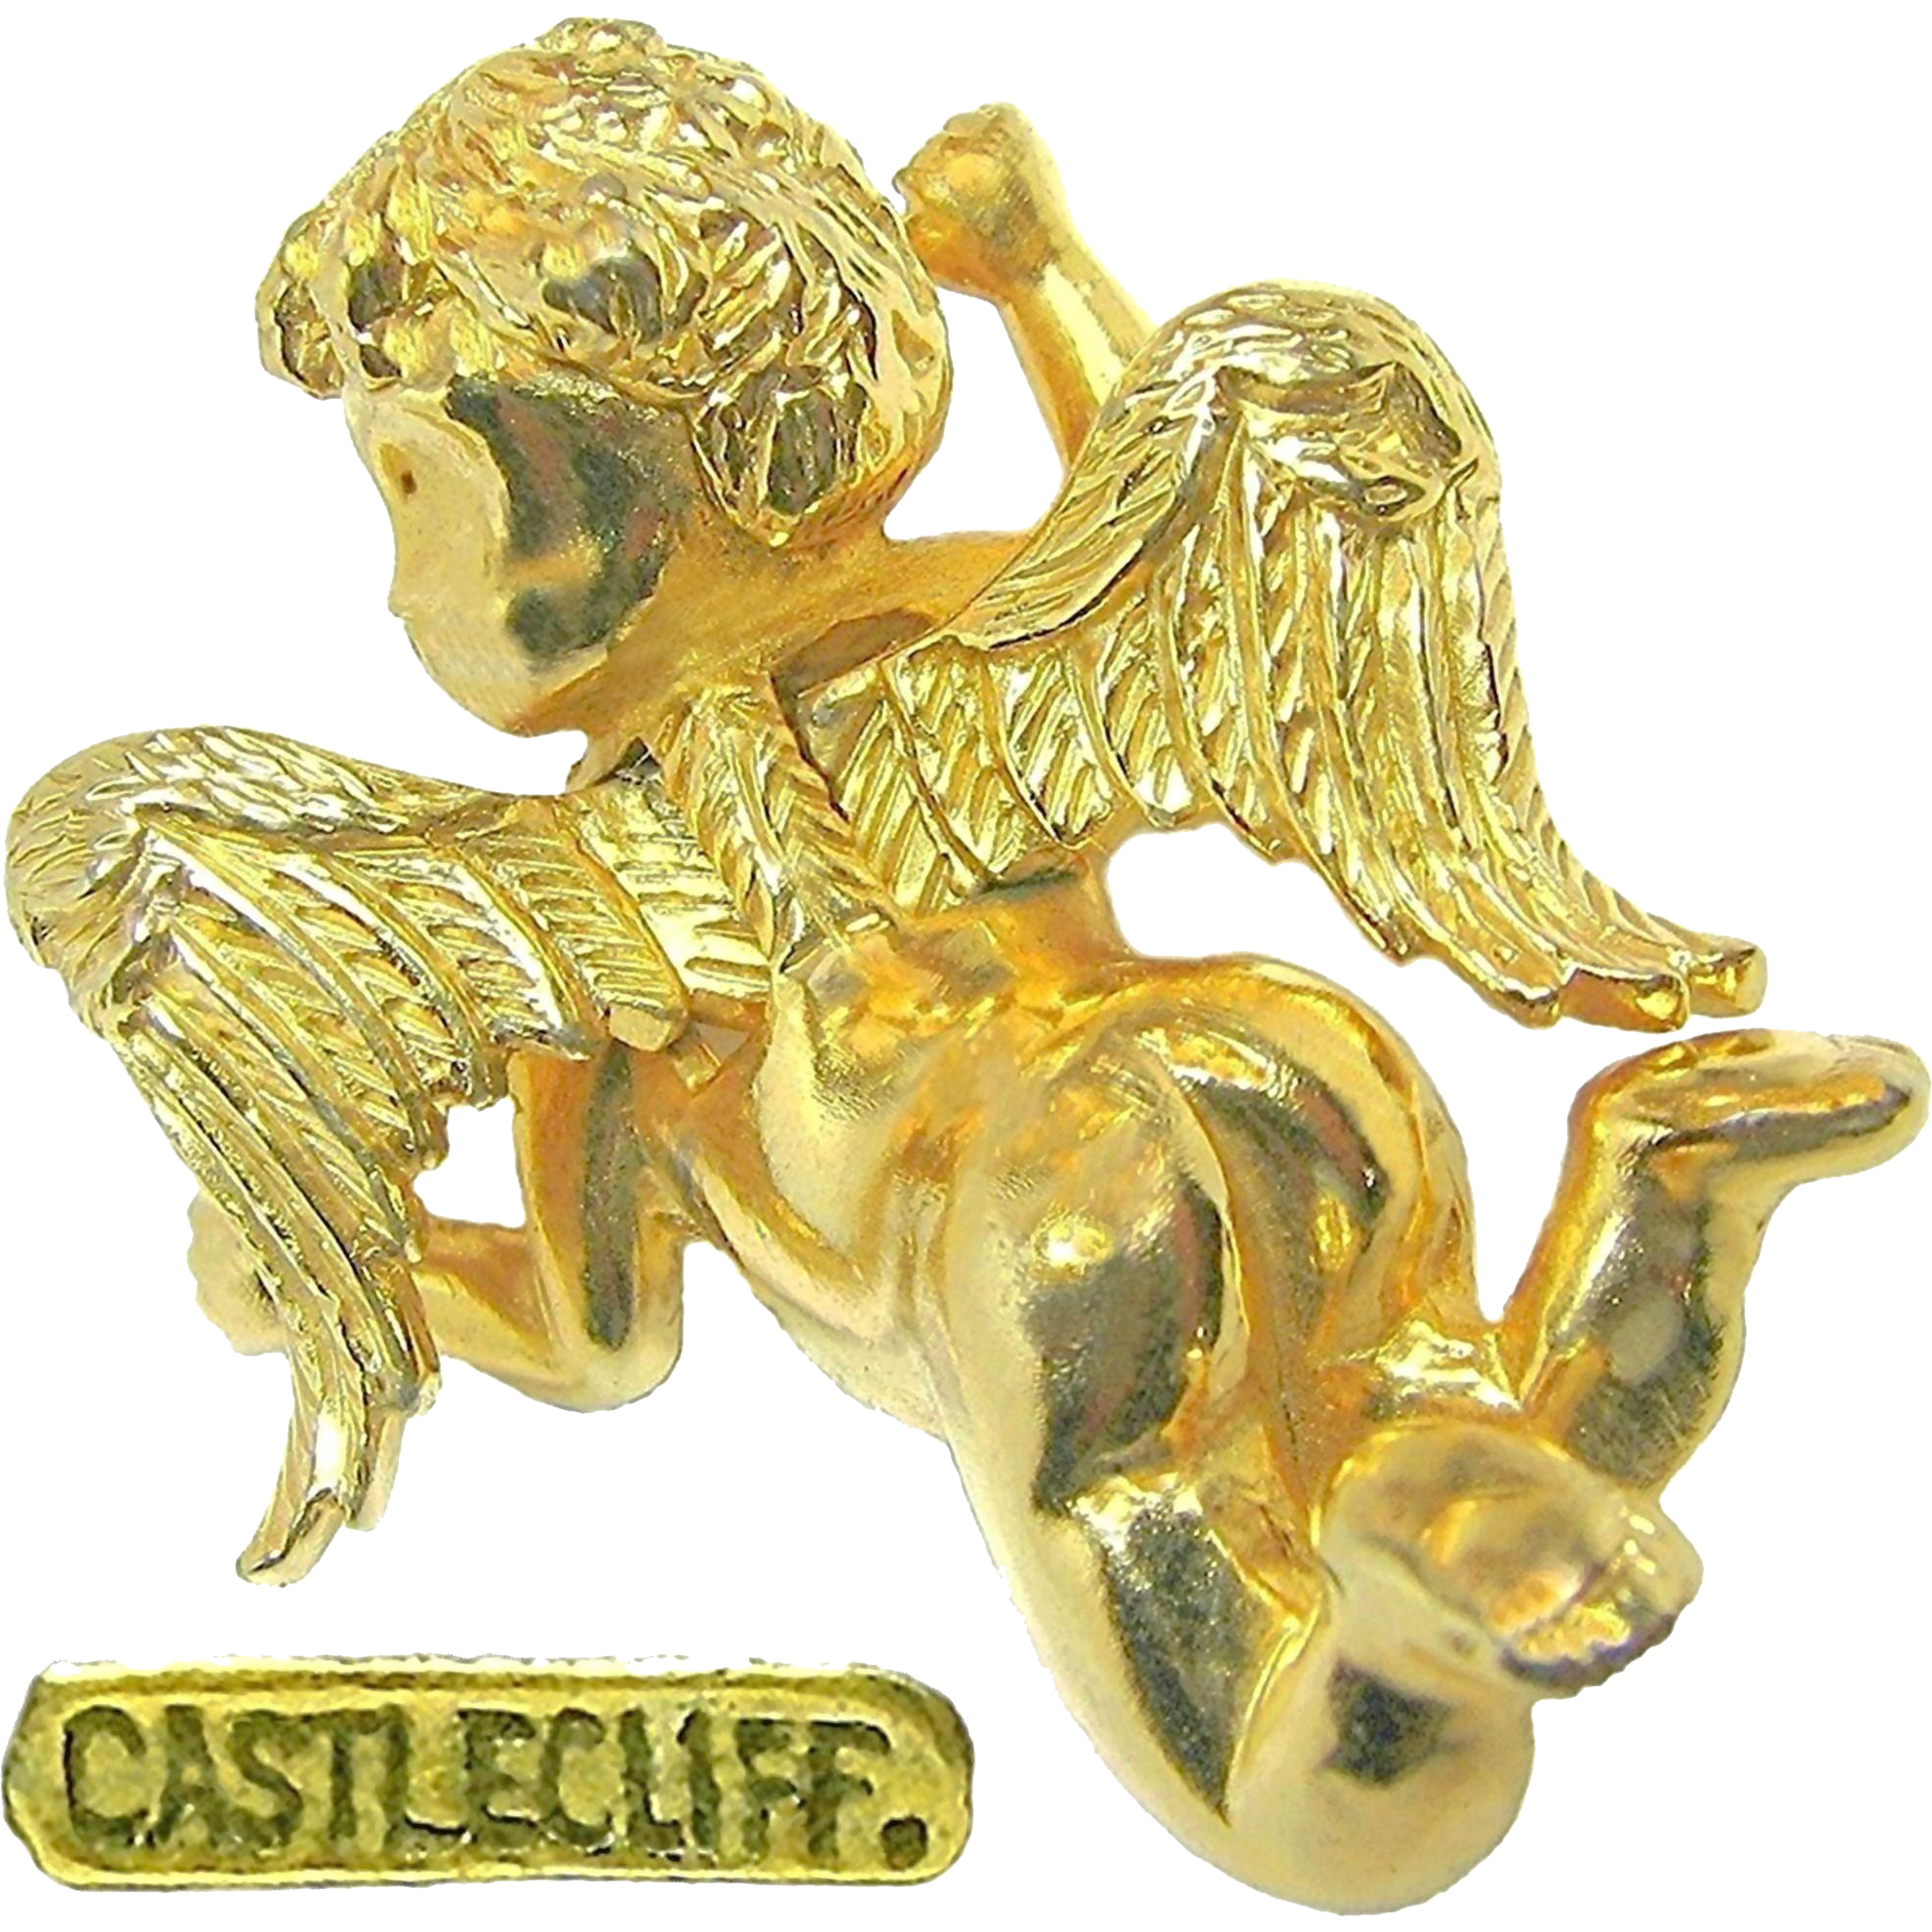 Fantasy Castlecliff -Golden Cherub has Just Landed- Brooch Dubbed a 'Pinch Pin' c.1966